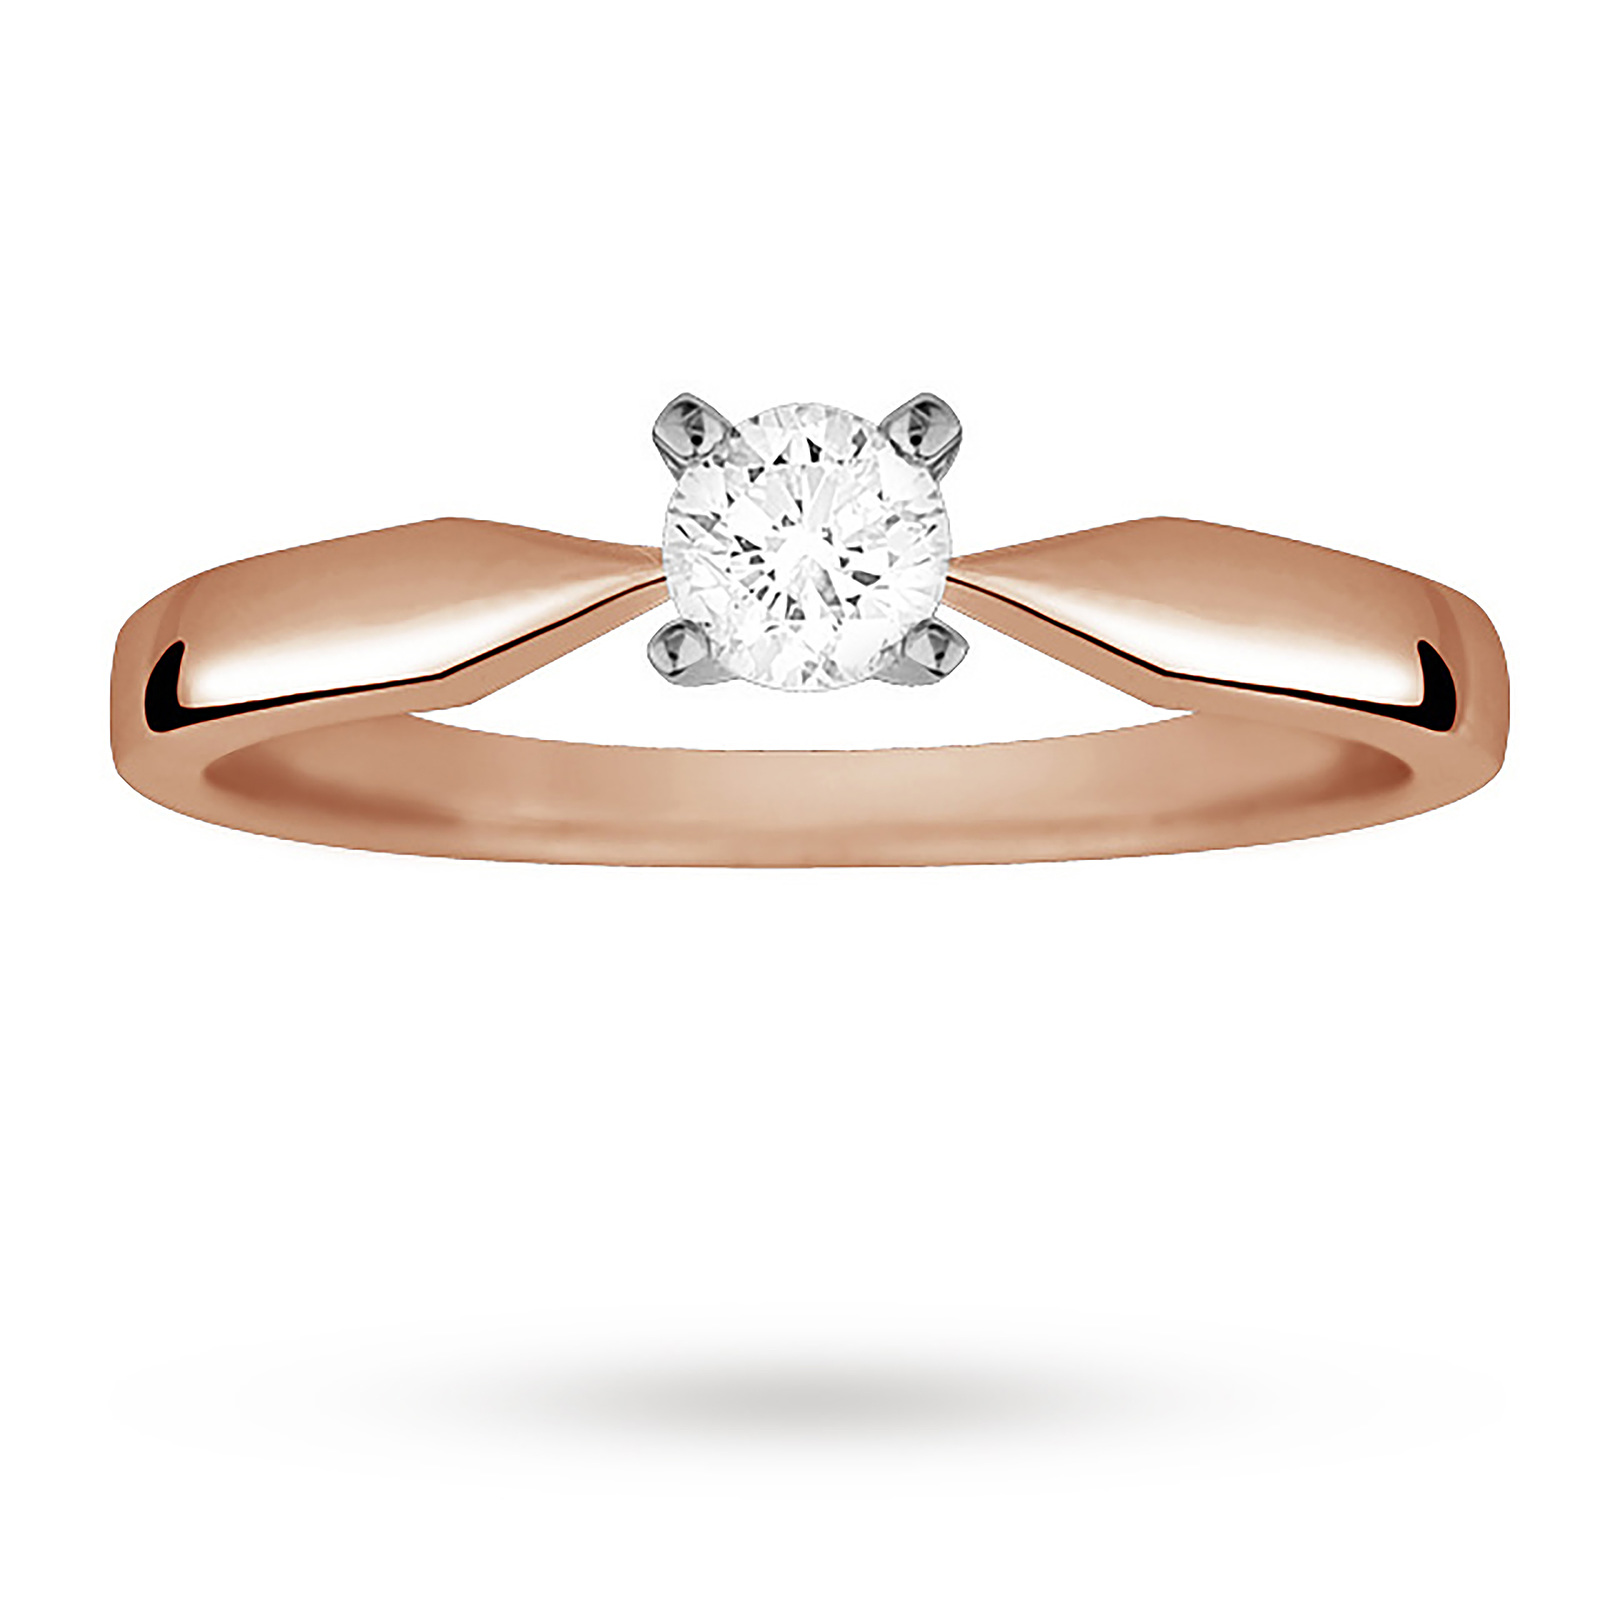 Brilliant Cut 0.20 Carat Solitaire Diamond Ring Set In 9 Carat Rose Gold